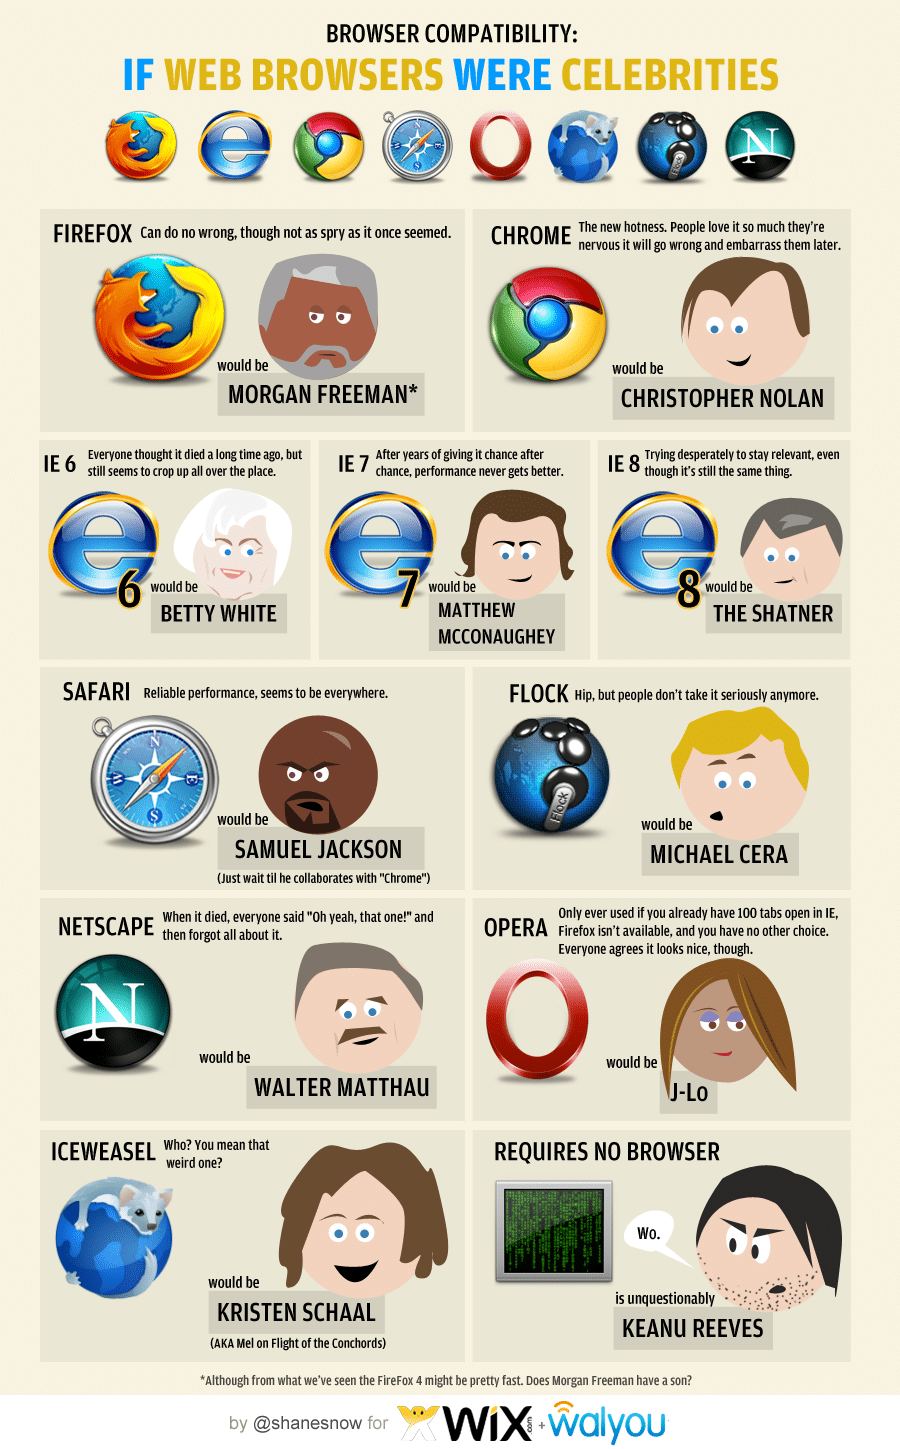 If Web Browsers Were Celebrities